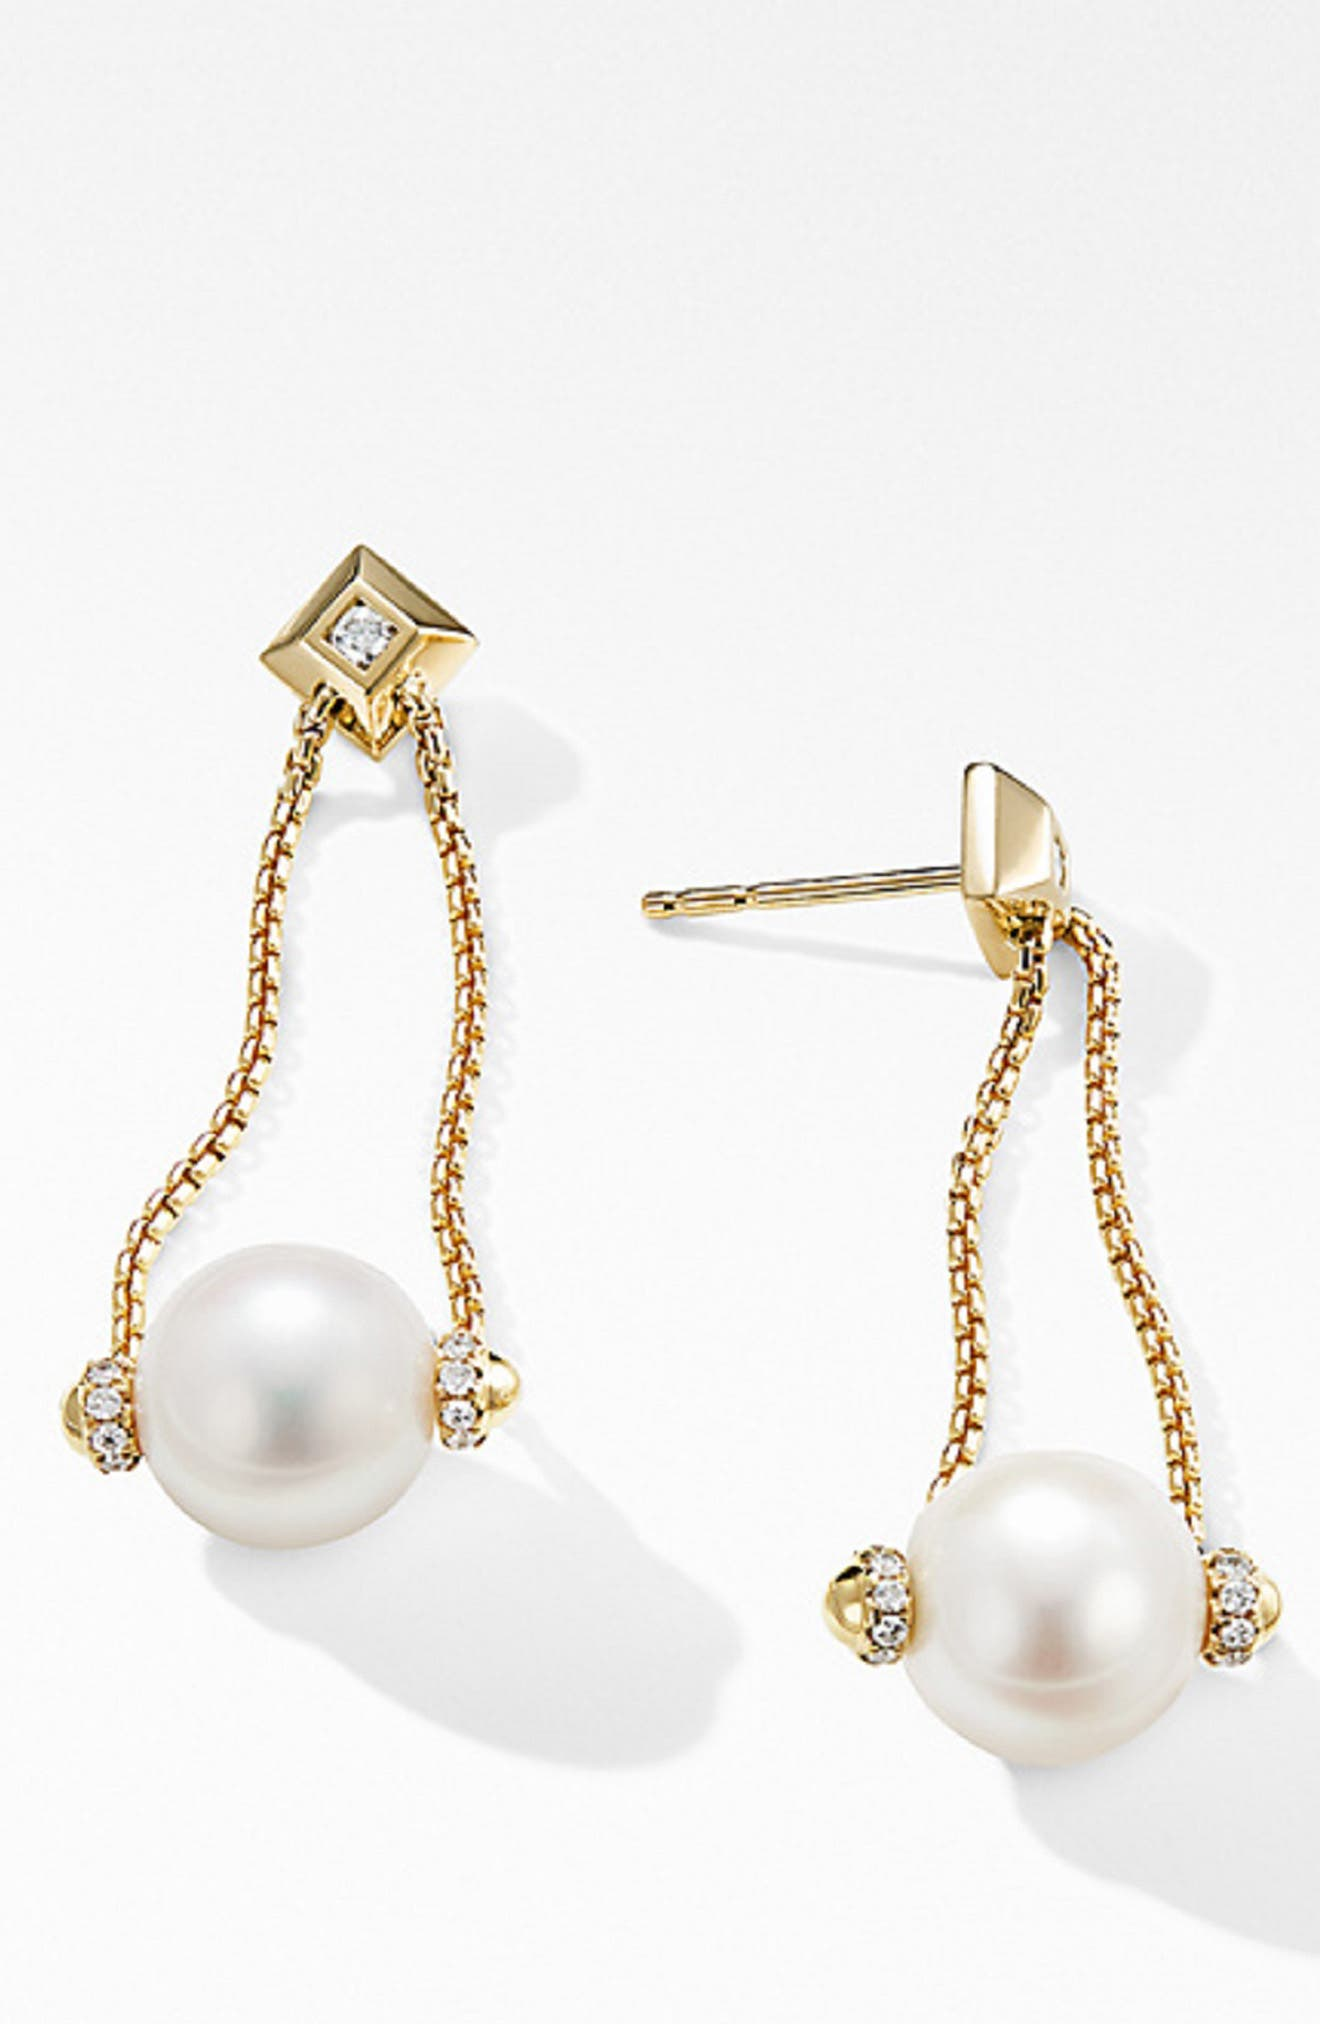 Solari Pearl Drop Earrings with Diamonds in 18K Yellow Gold,                             Alternate thumbnail 2, color,                             PEARL